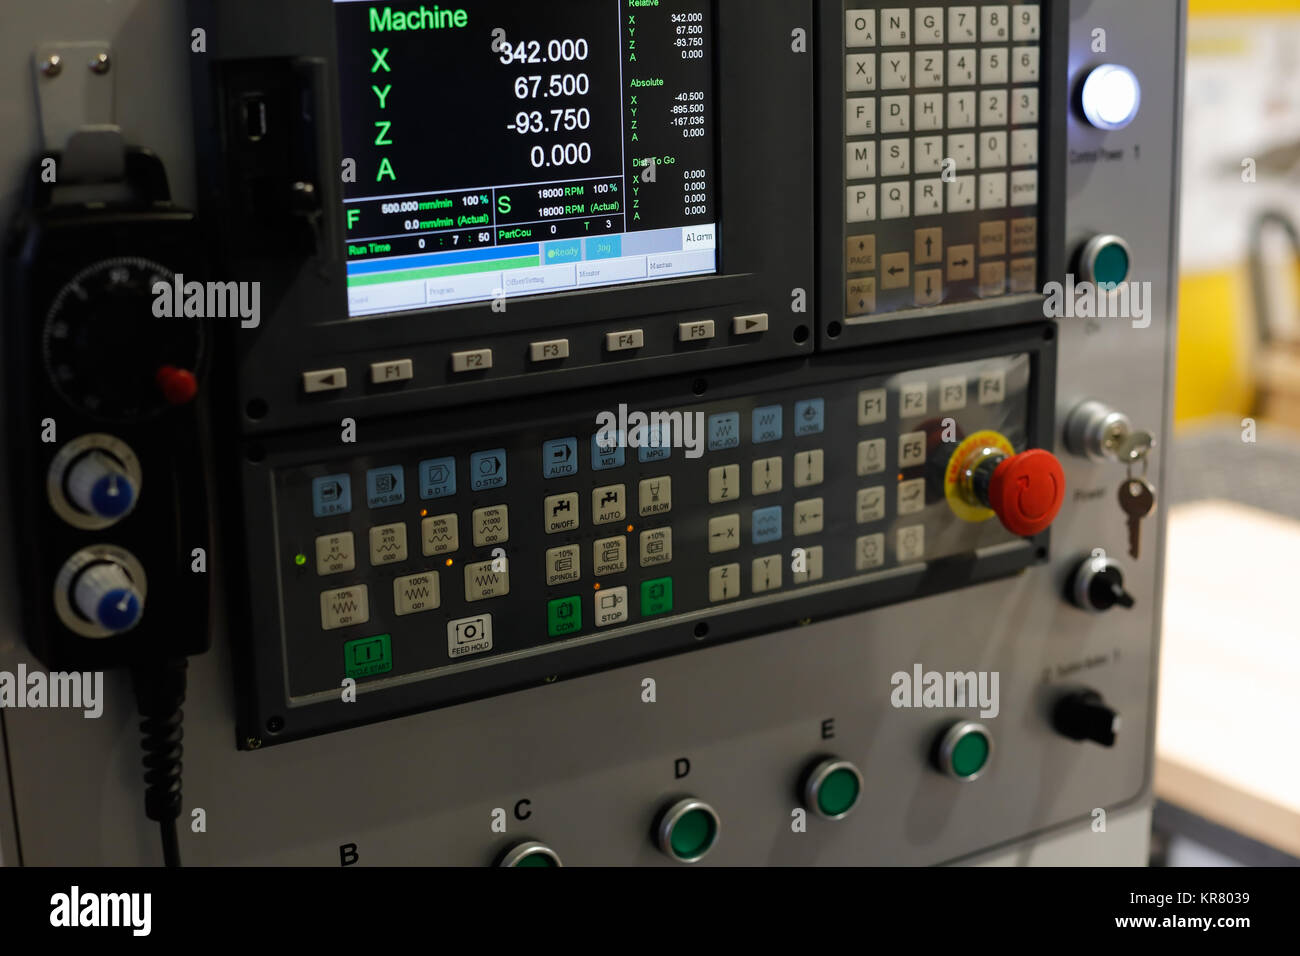 Control panel of the CNC machine. Selective focus. - Stock Image